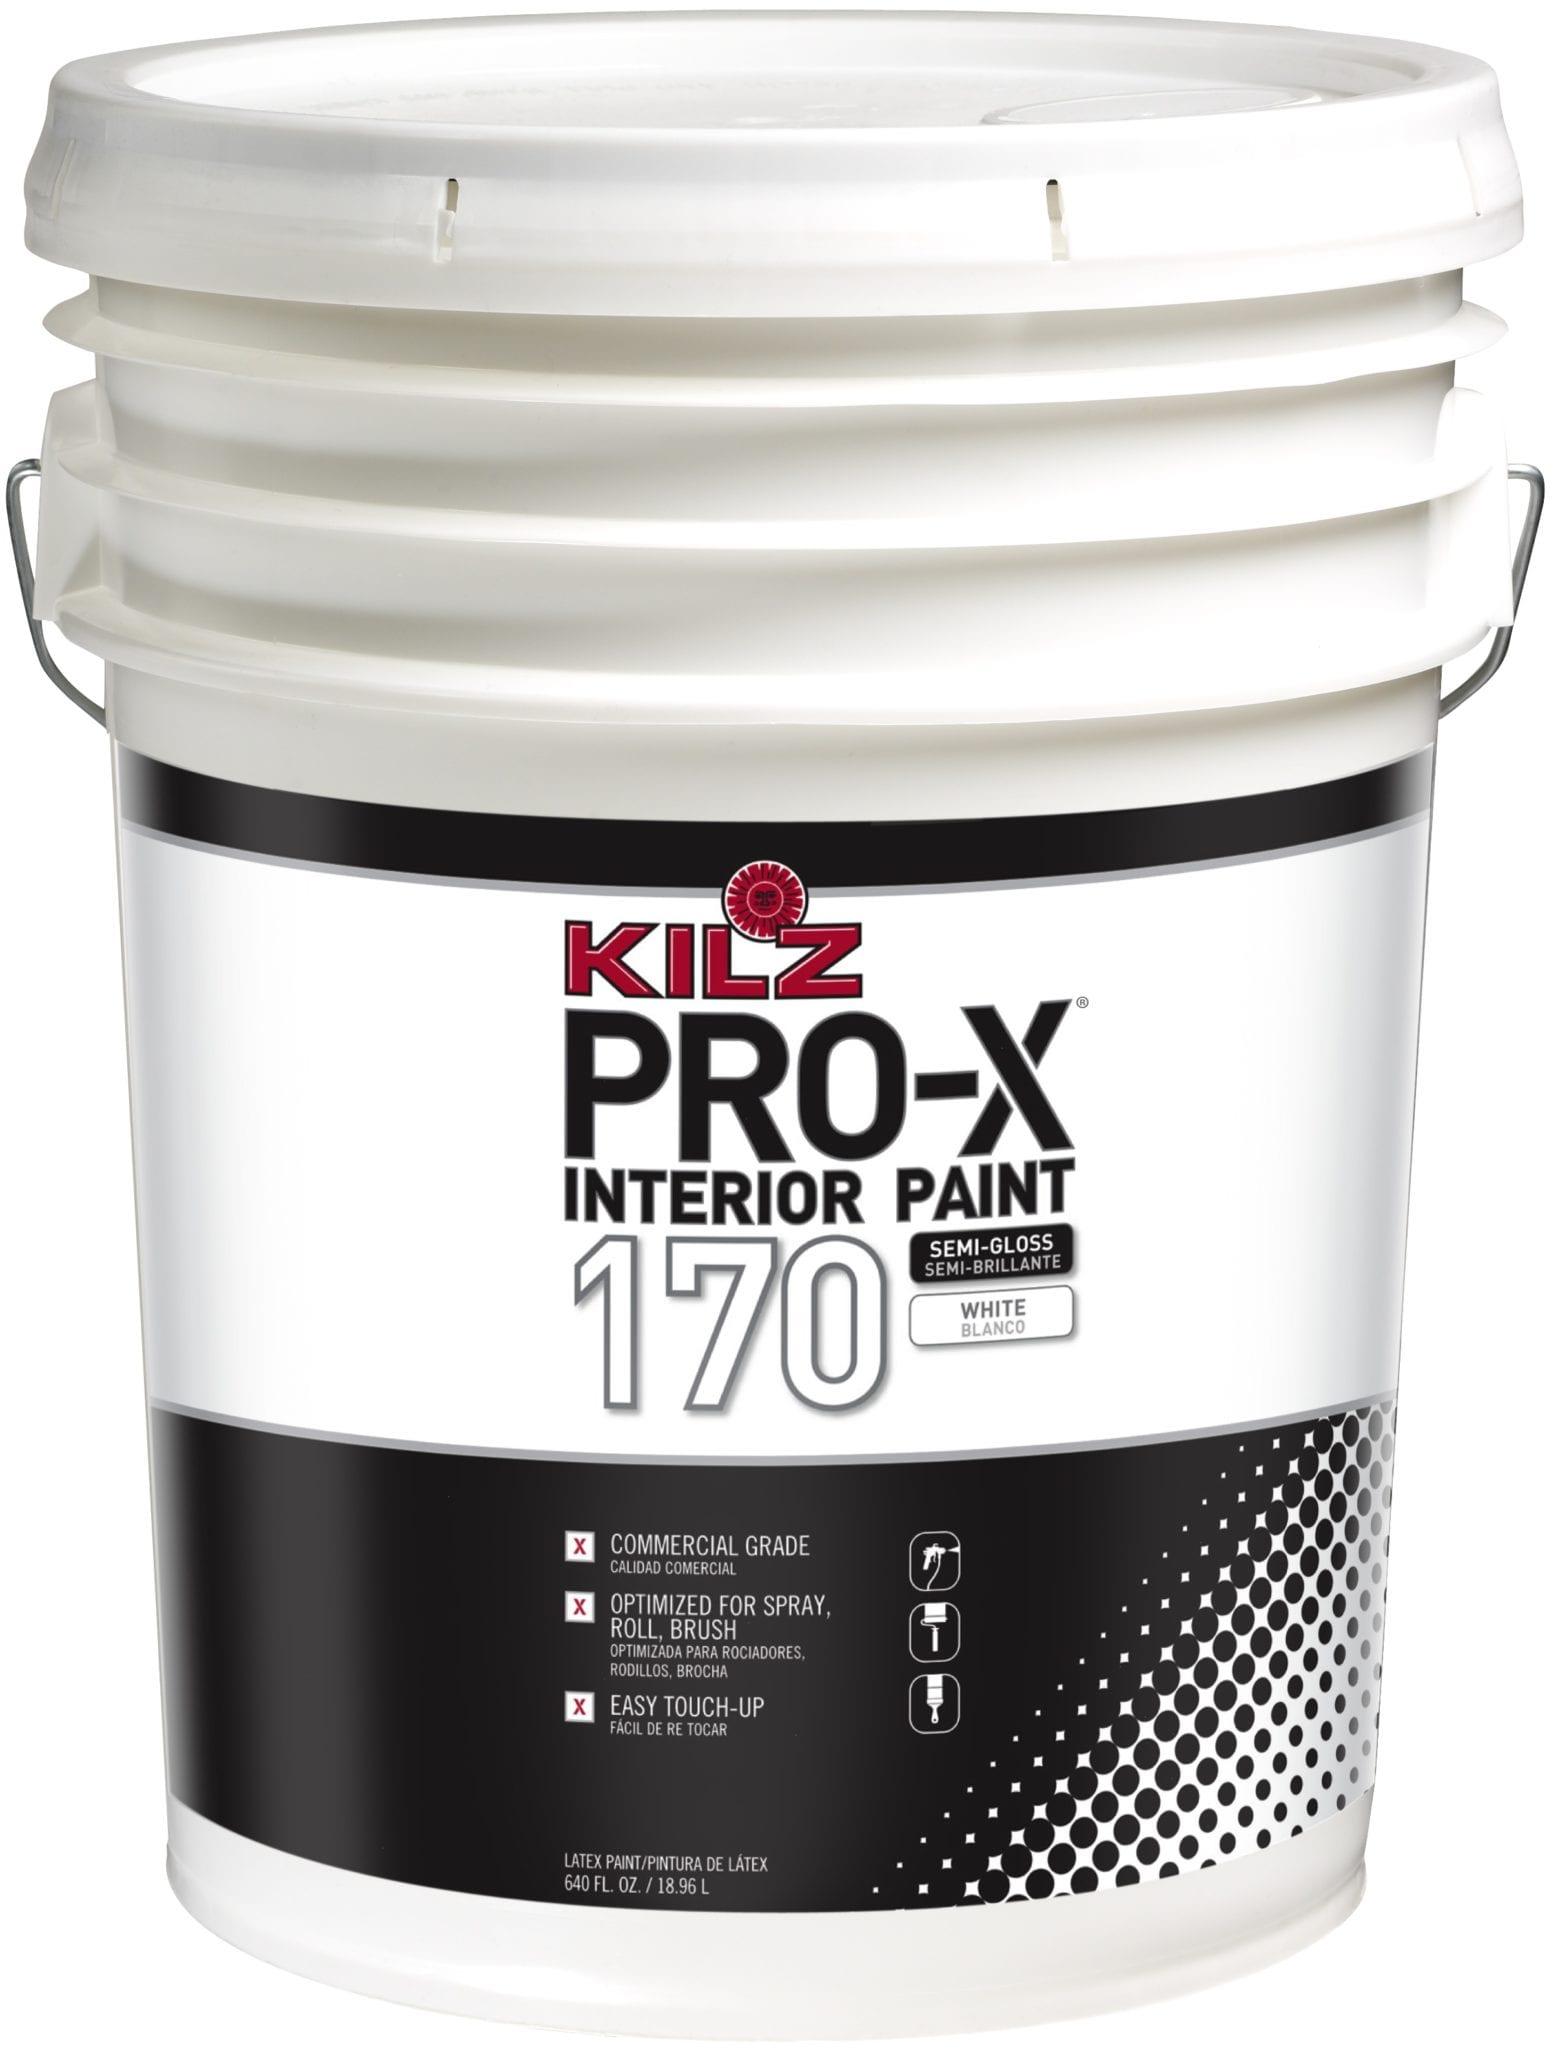 Home Depot 5 Gallon Interior Paint Home Design Ideas and